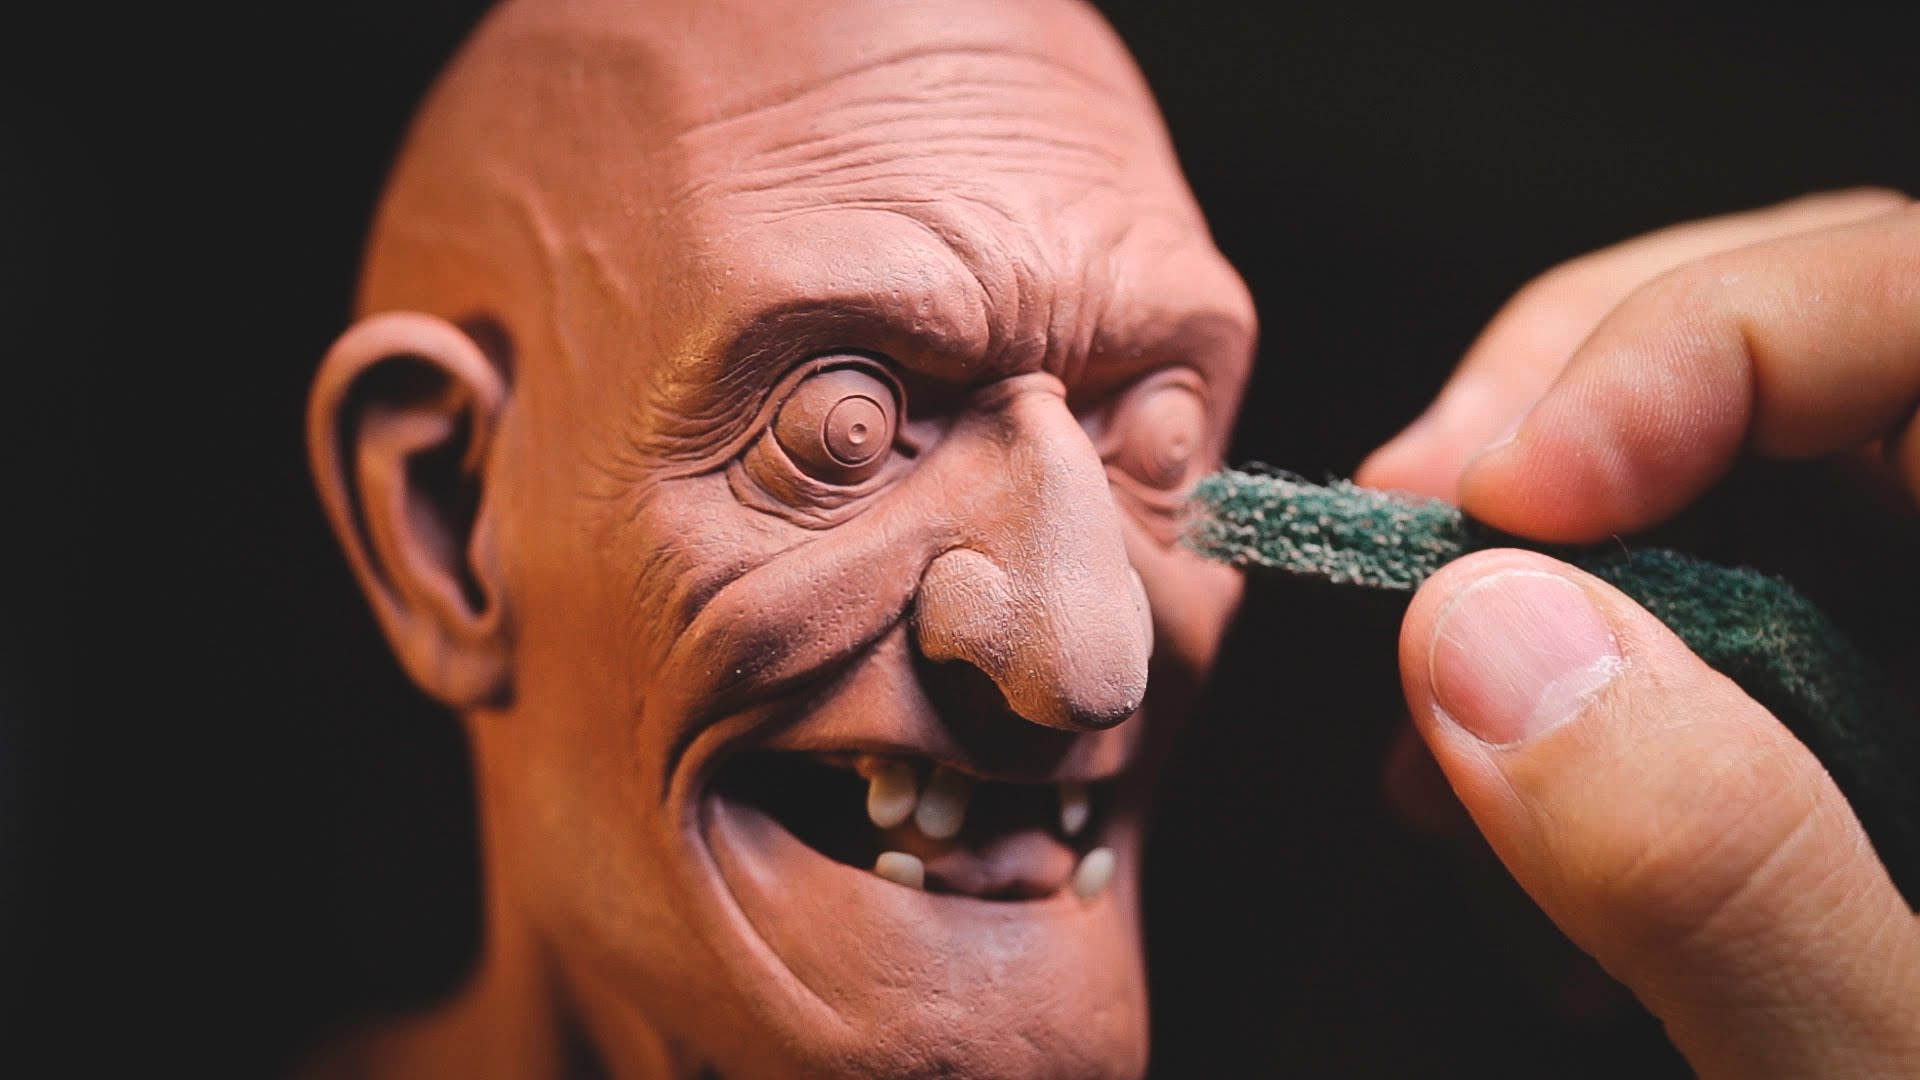 Time Lapse Sculpture Video - Sculpture Geek